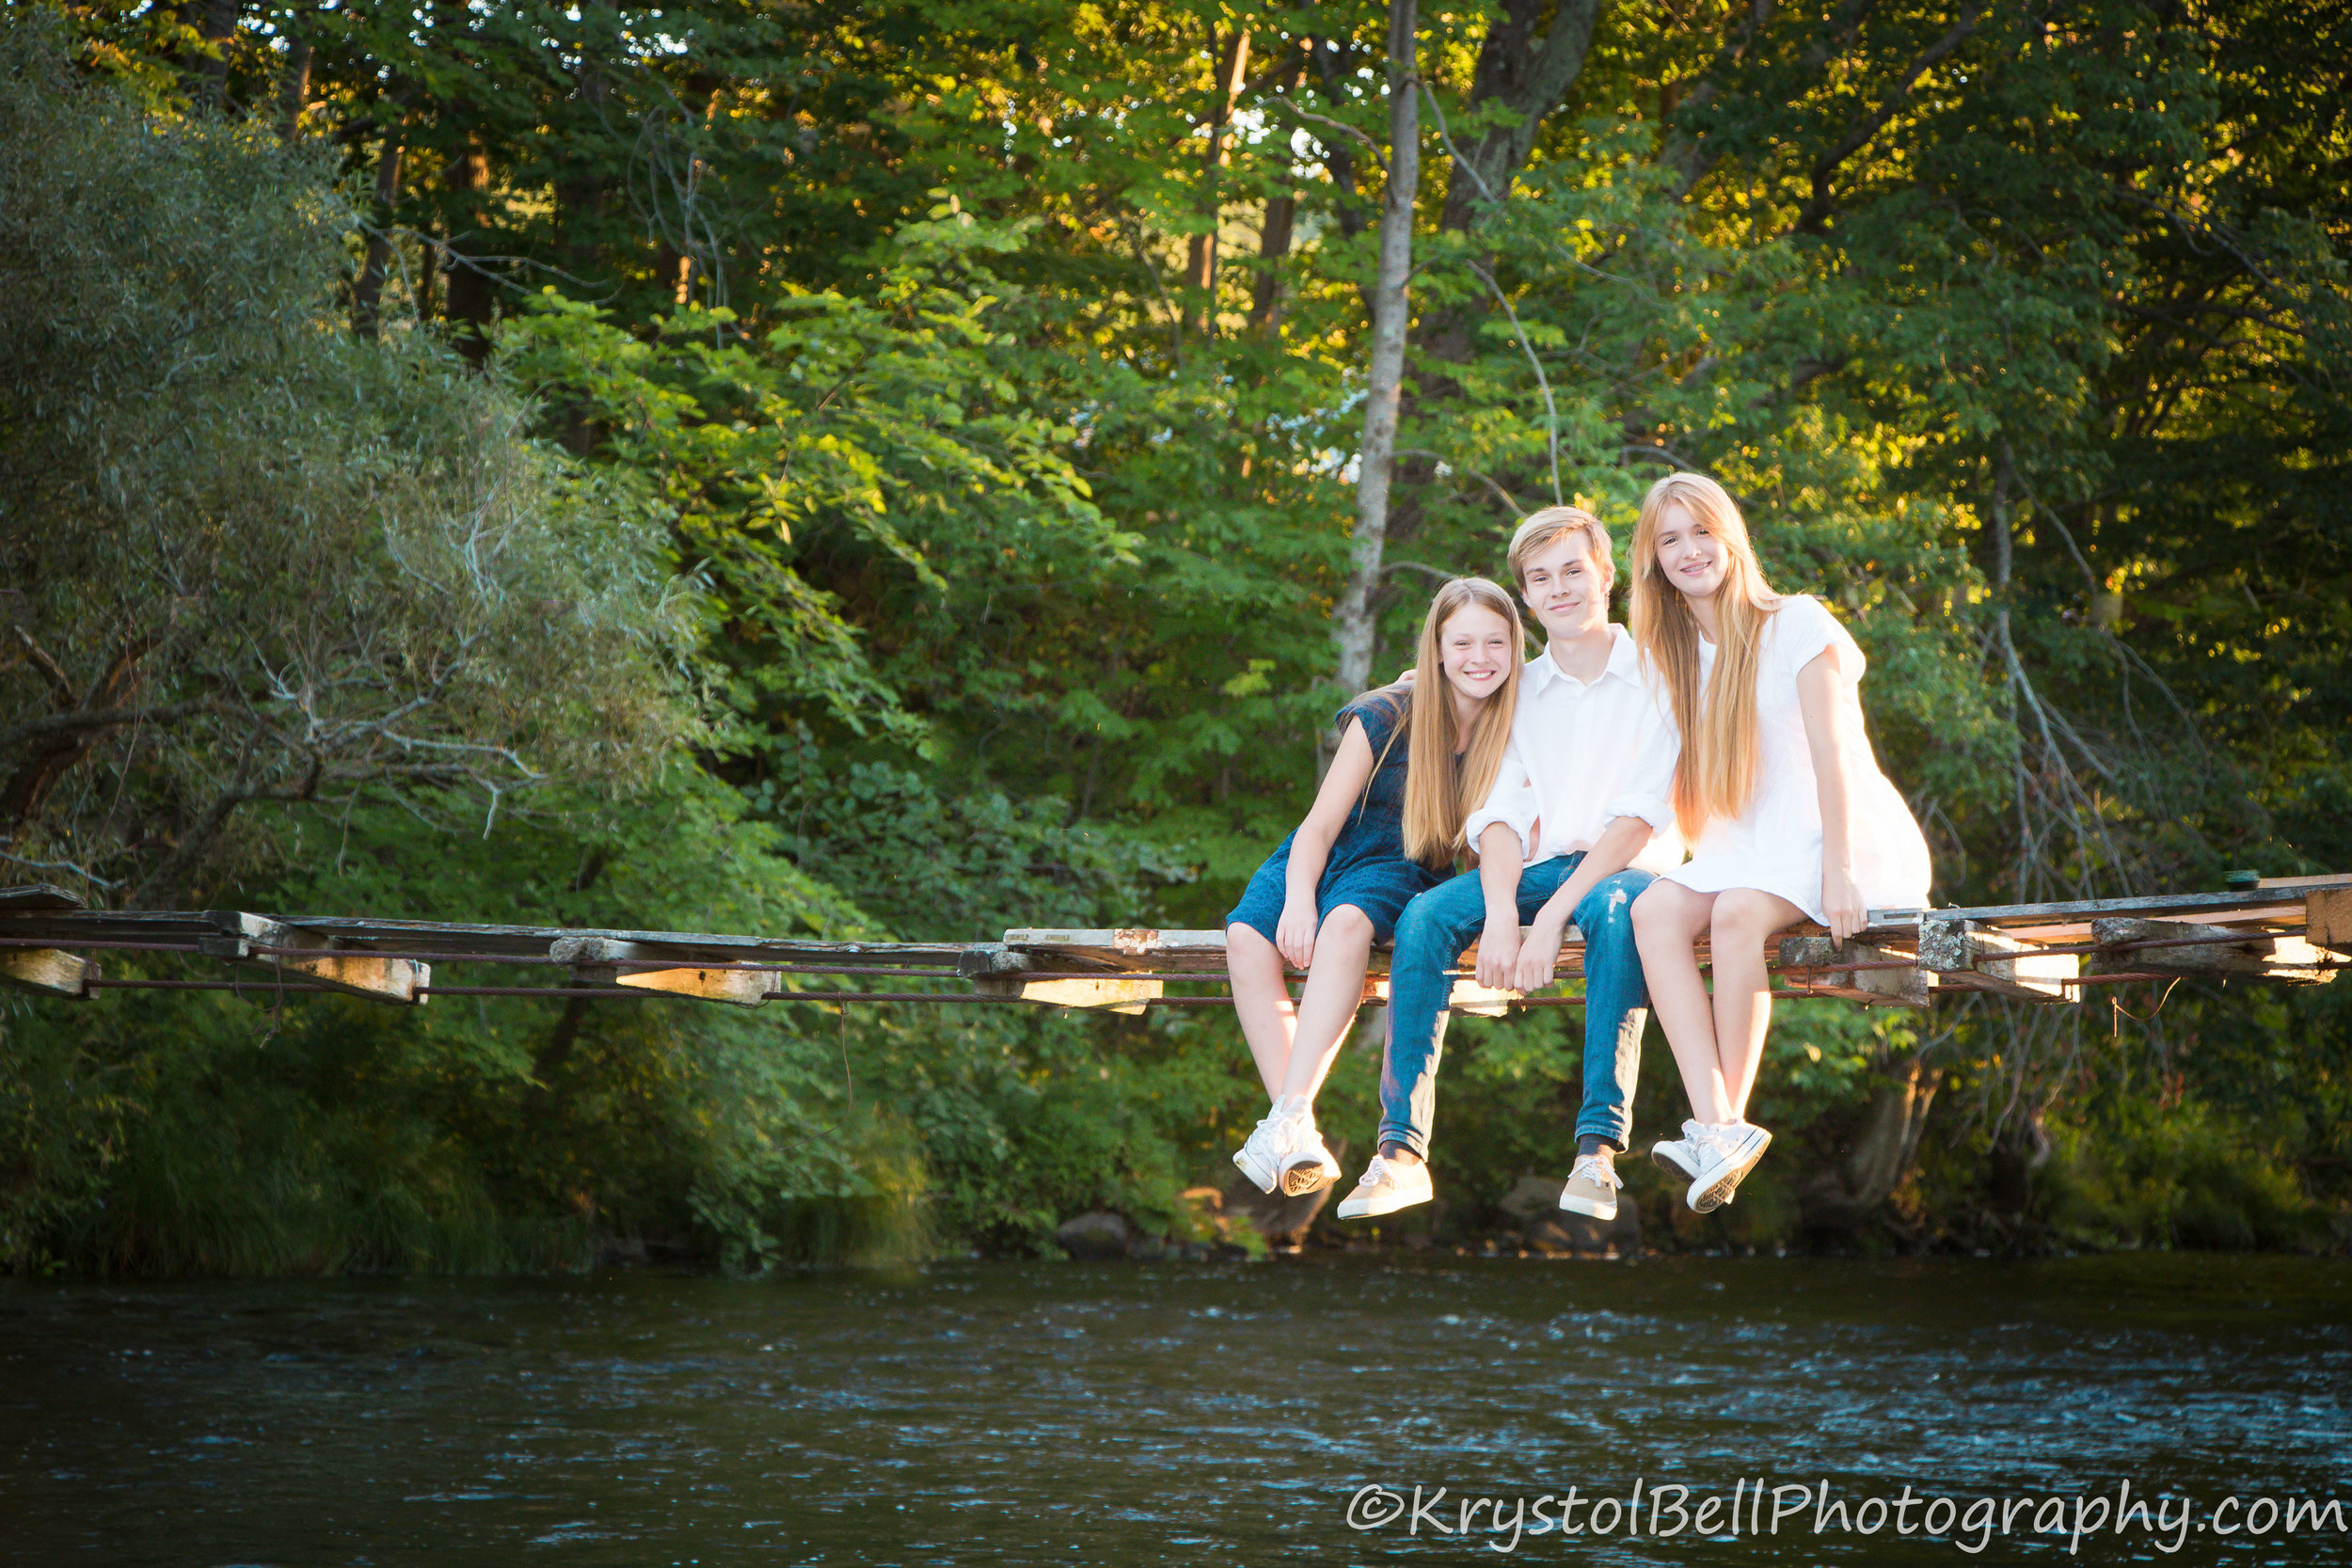 These three were so much fun, and I loved that they were happy to make their way out on to a sketchy bridge!